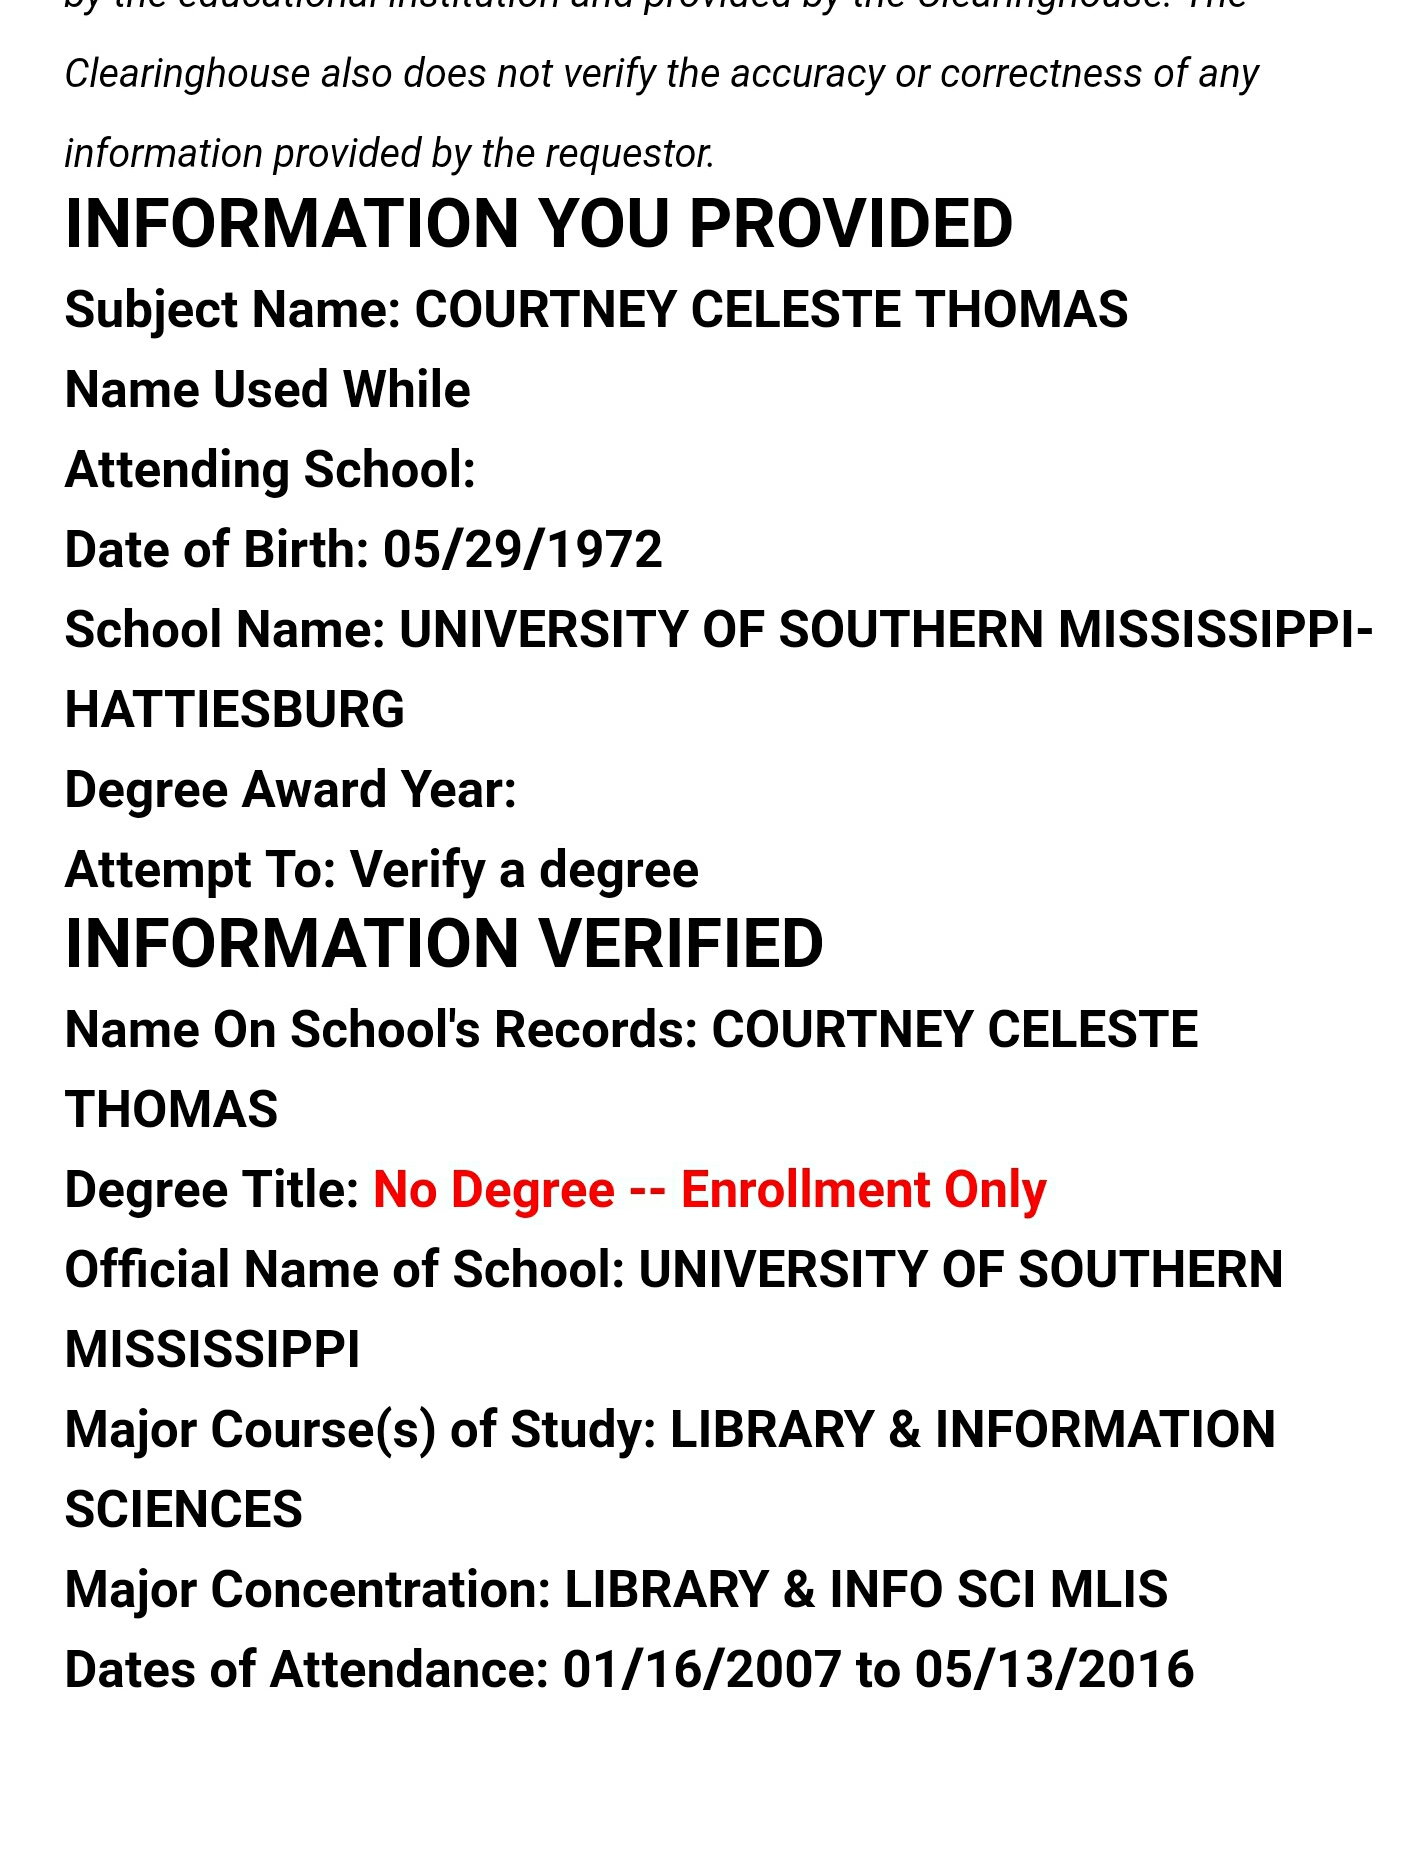 Screen Capture of National Student Clearinghouse Return for Executive Director Courtney Thomas